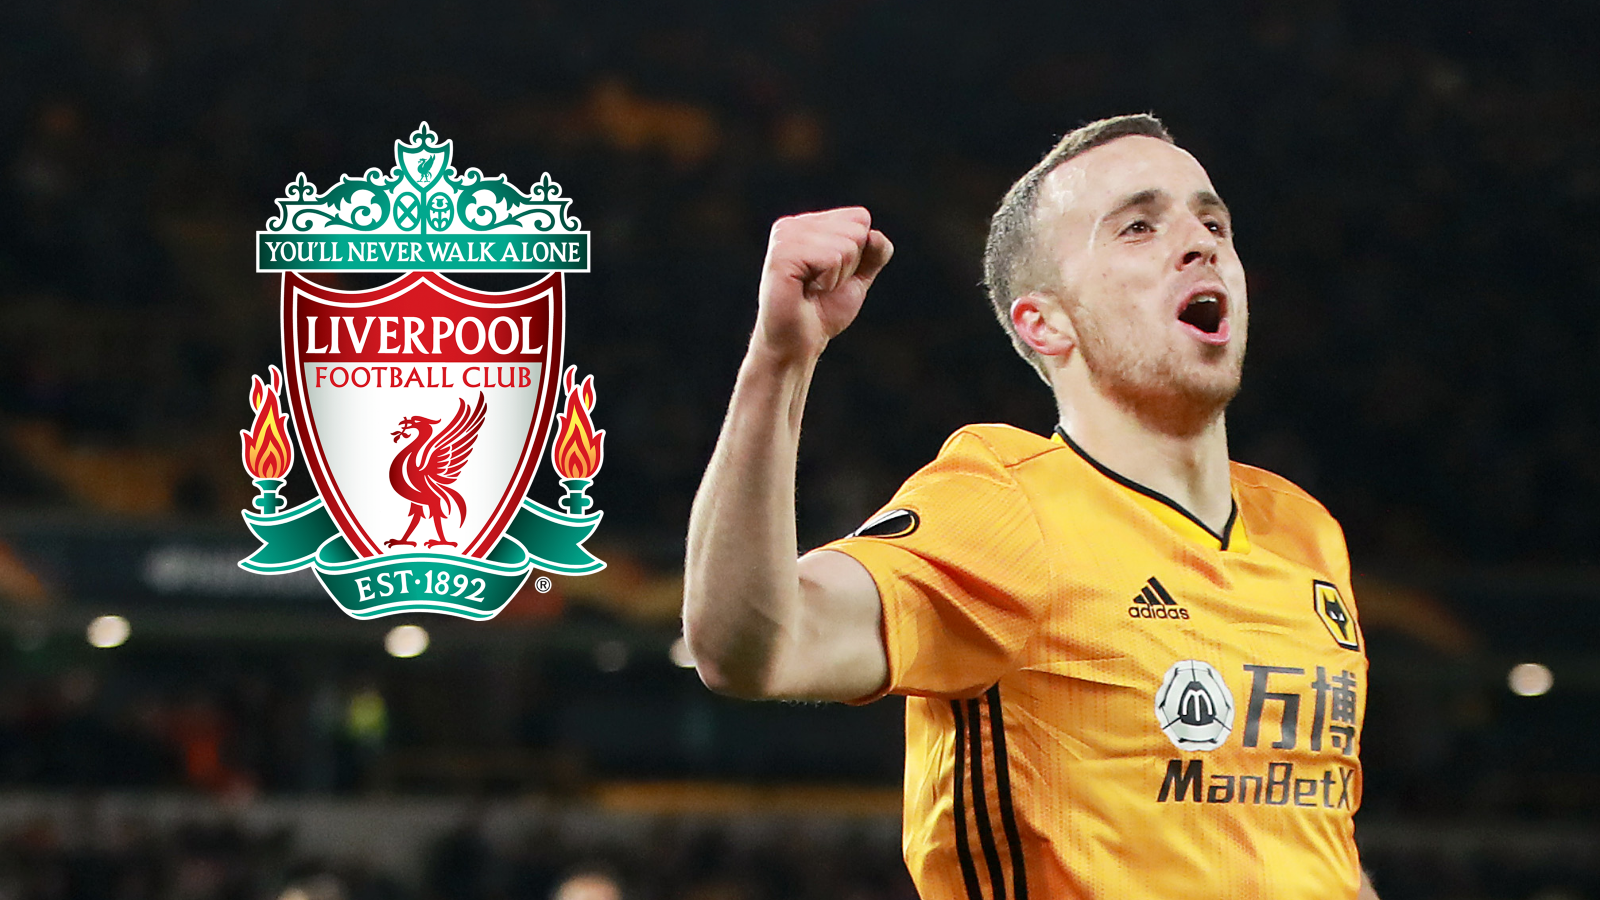 liverpool confirm 41m signing of wolves star jota goal com 41m signing of wolves star jota